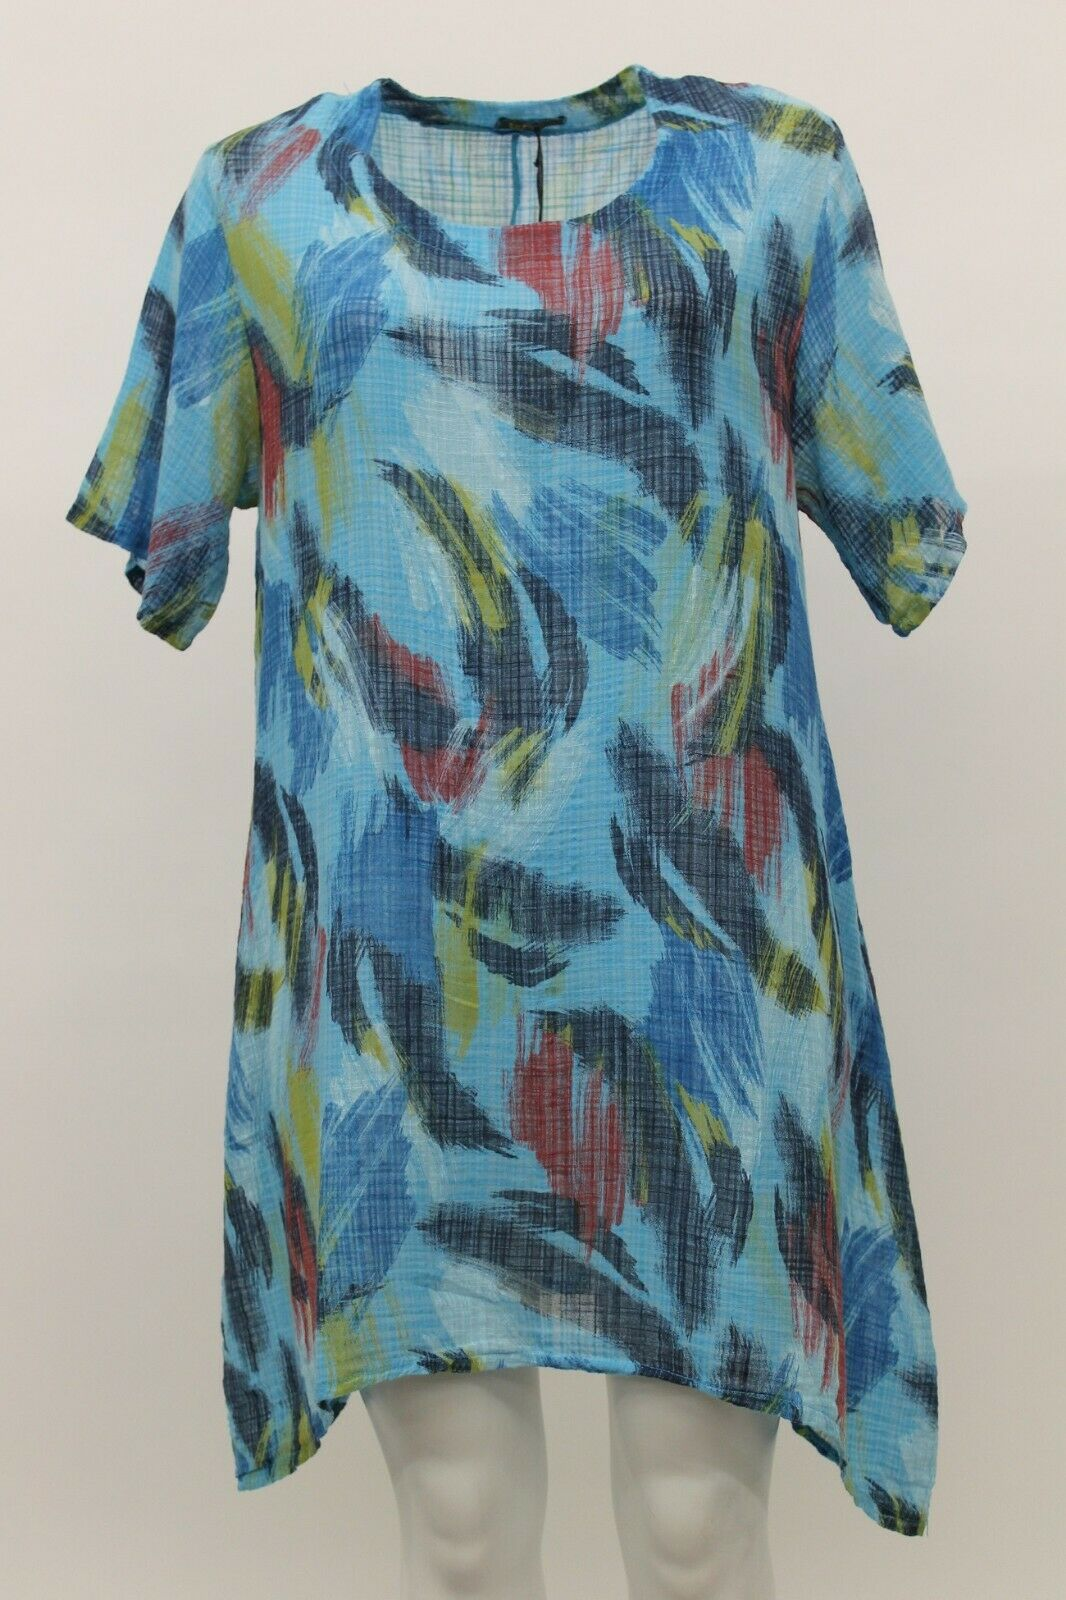 MADE IN ITALY WOMEN'S SPRING SUMMER COTTON LINEN GAUZE TUNIC TOP blueE ABSTRACT